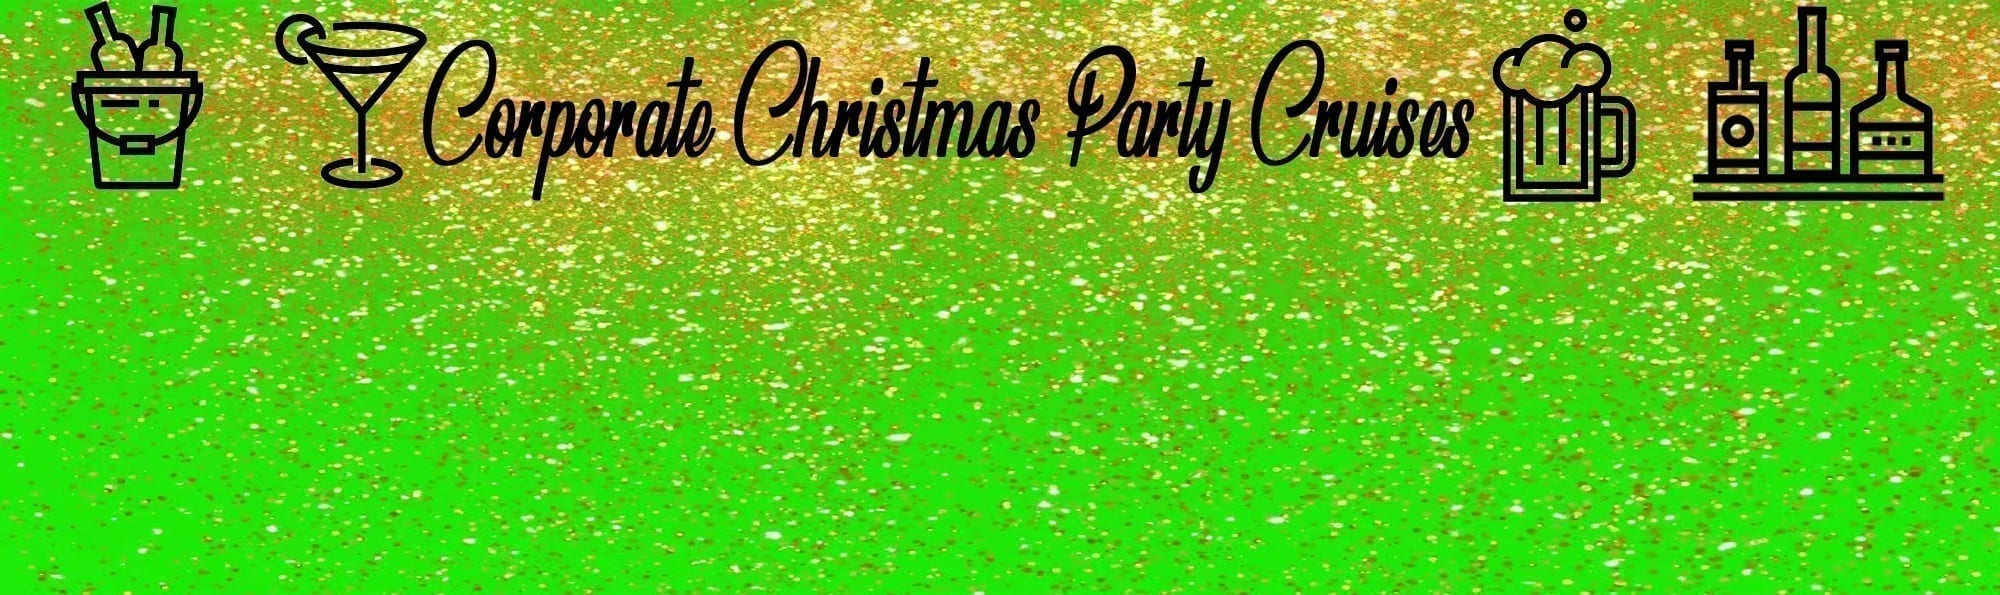 CORPORATE CHRISTMAS PARTY CRUISES